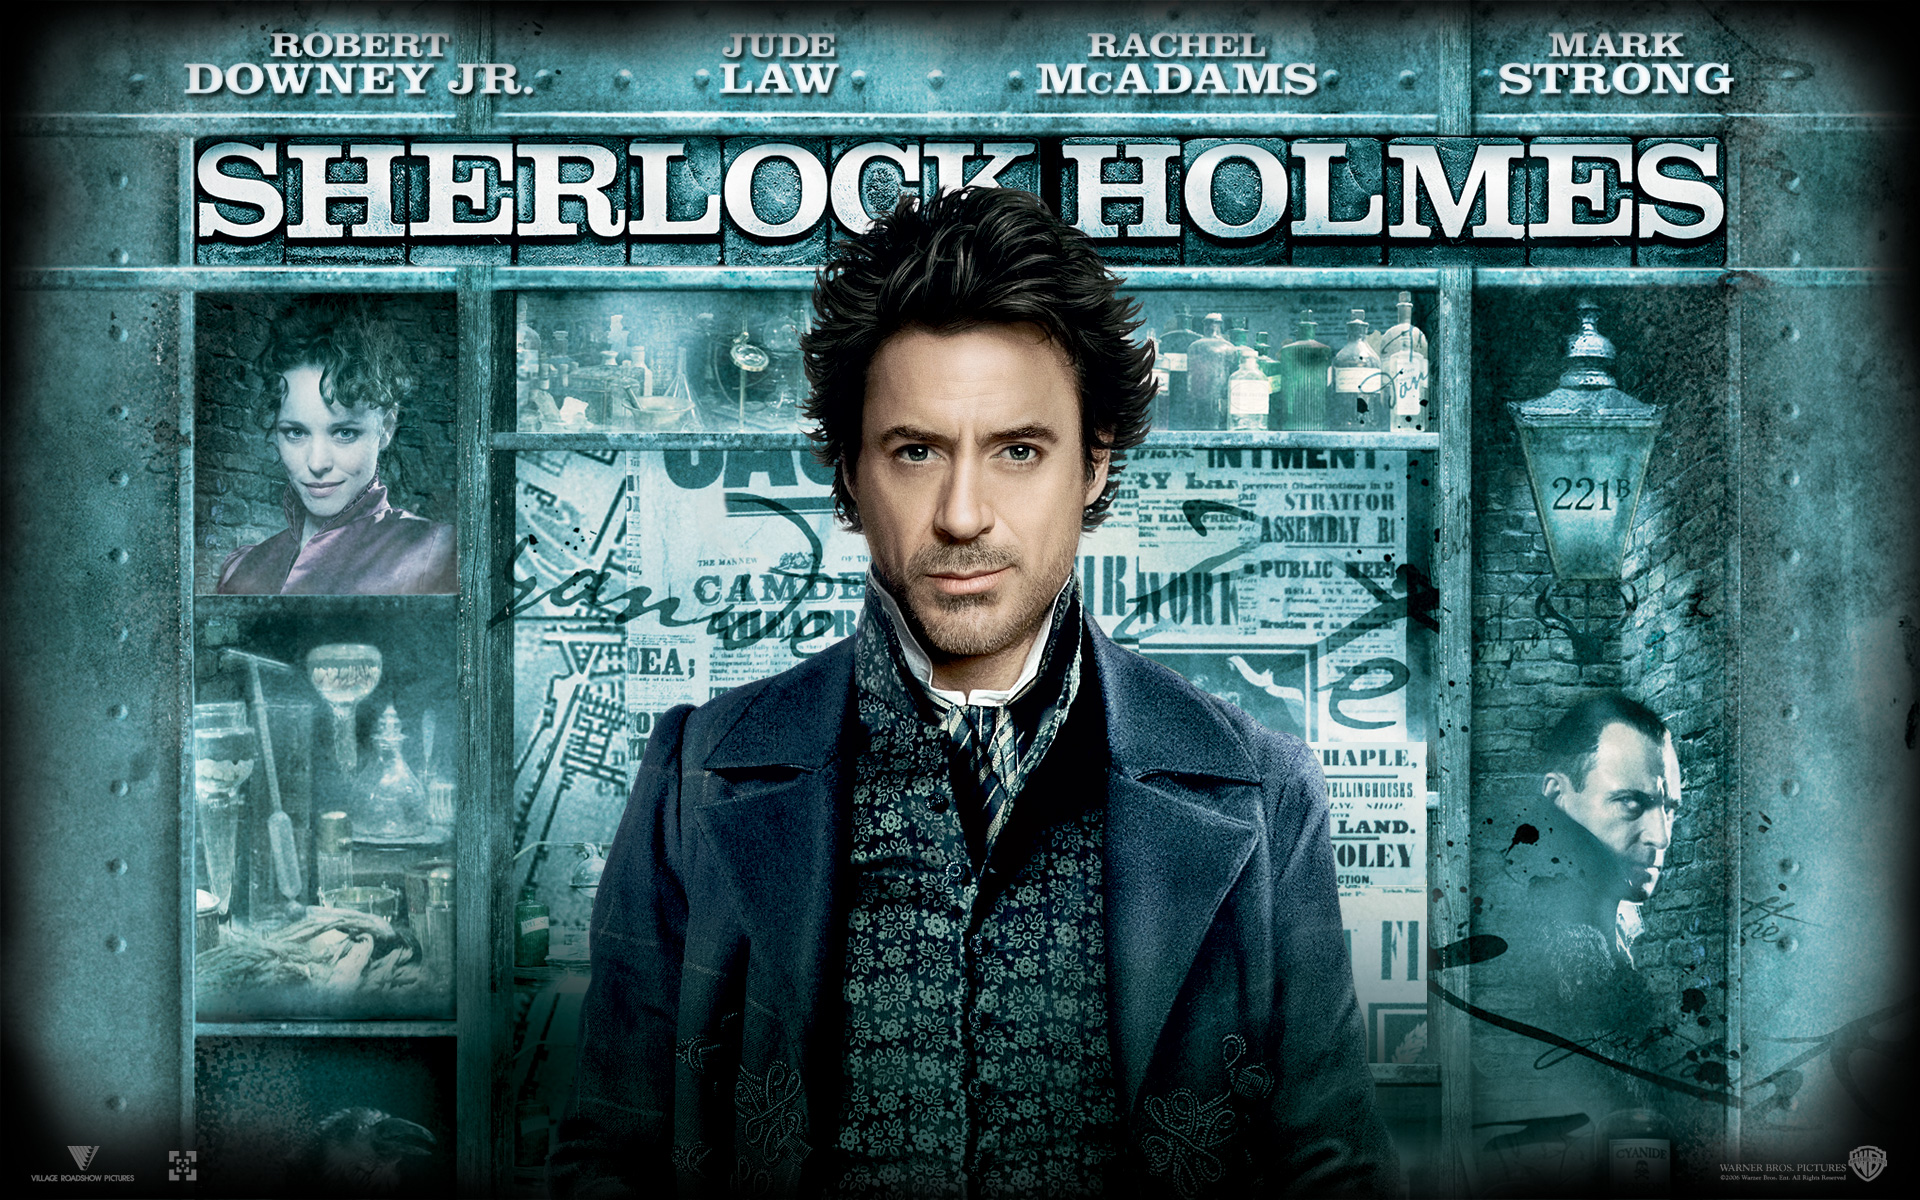 robert downey jr in sherlock holmes wallpapers - Robert Downey Jr in Sherlock Holmes 2 Wallpapers HD